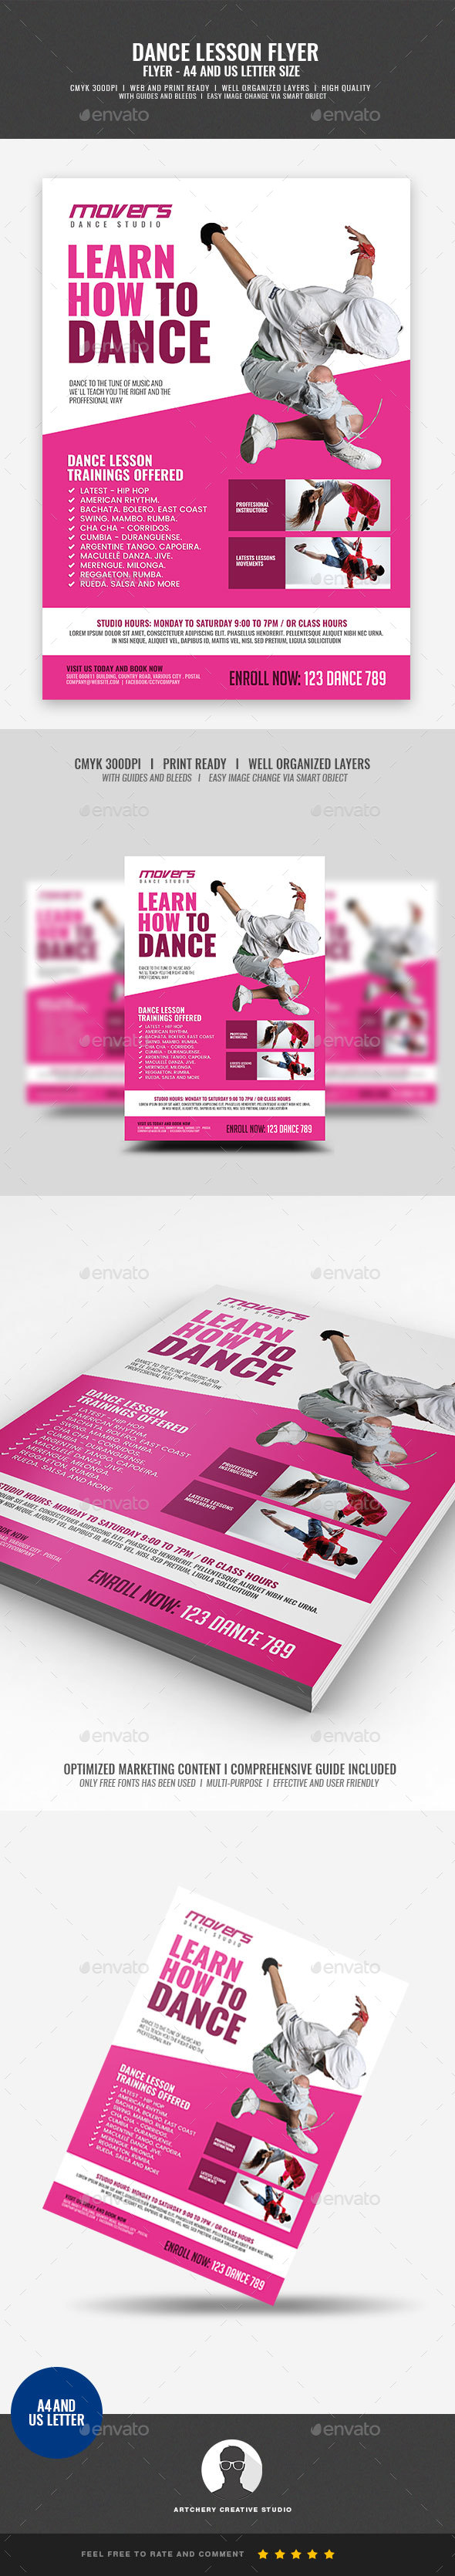 Dance Studio Flyer - Corporate Flyers